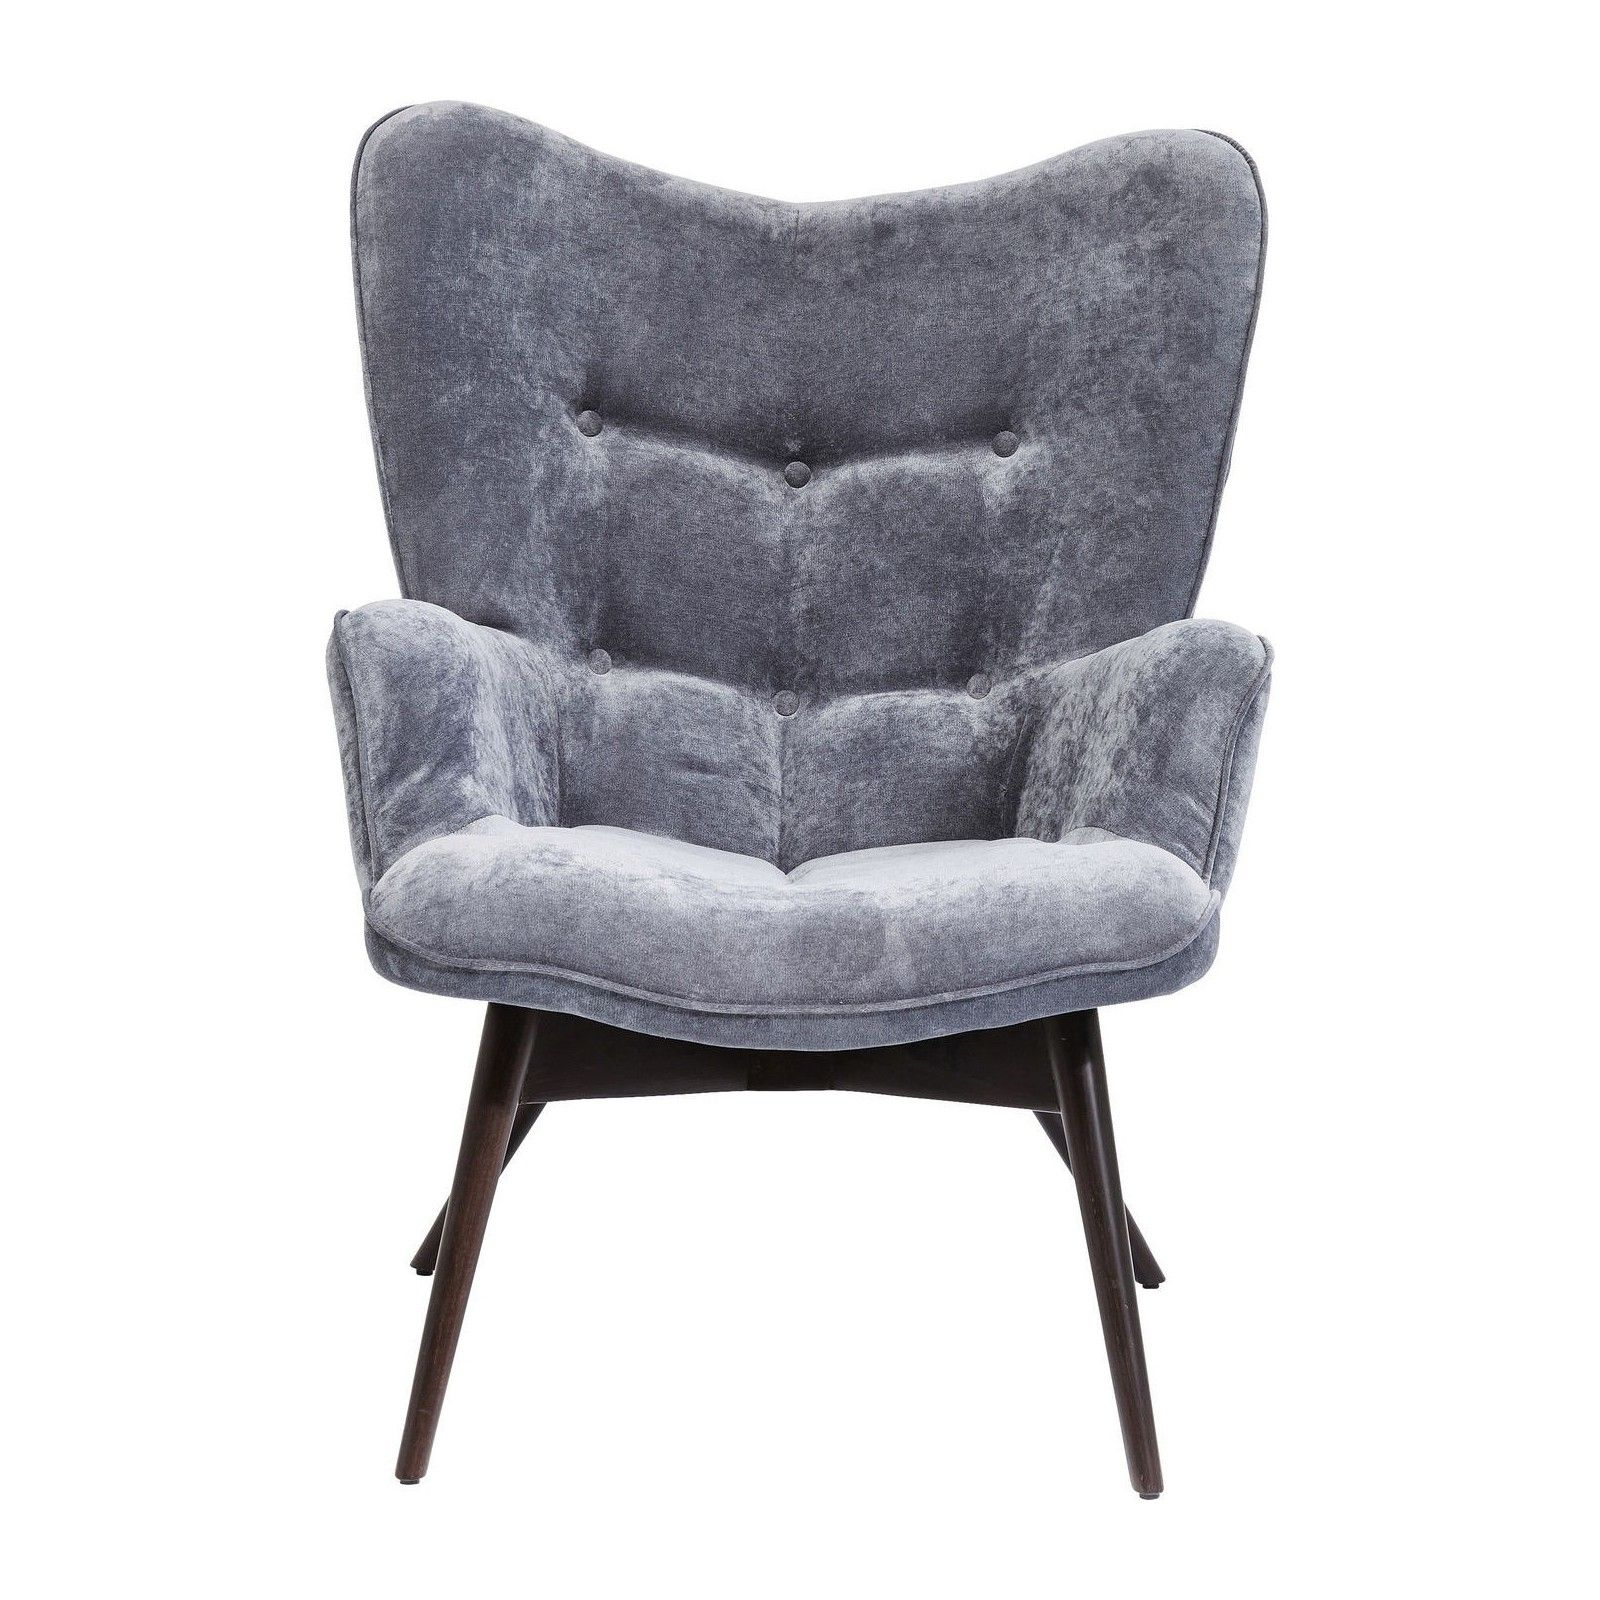 Design Retro Fauteuil.Fauteuil Vicky Velours Gris Kare Design Collection